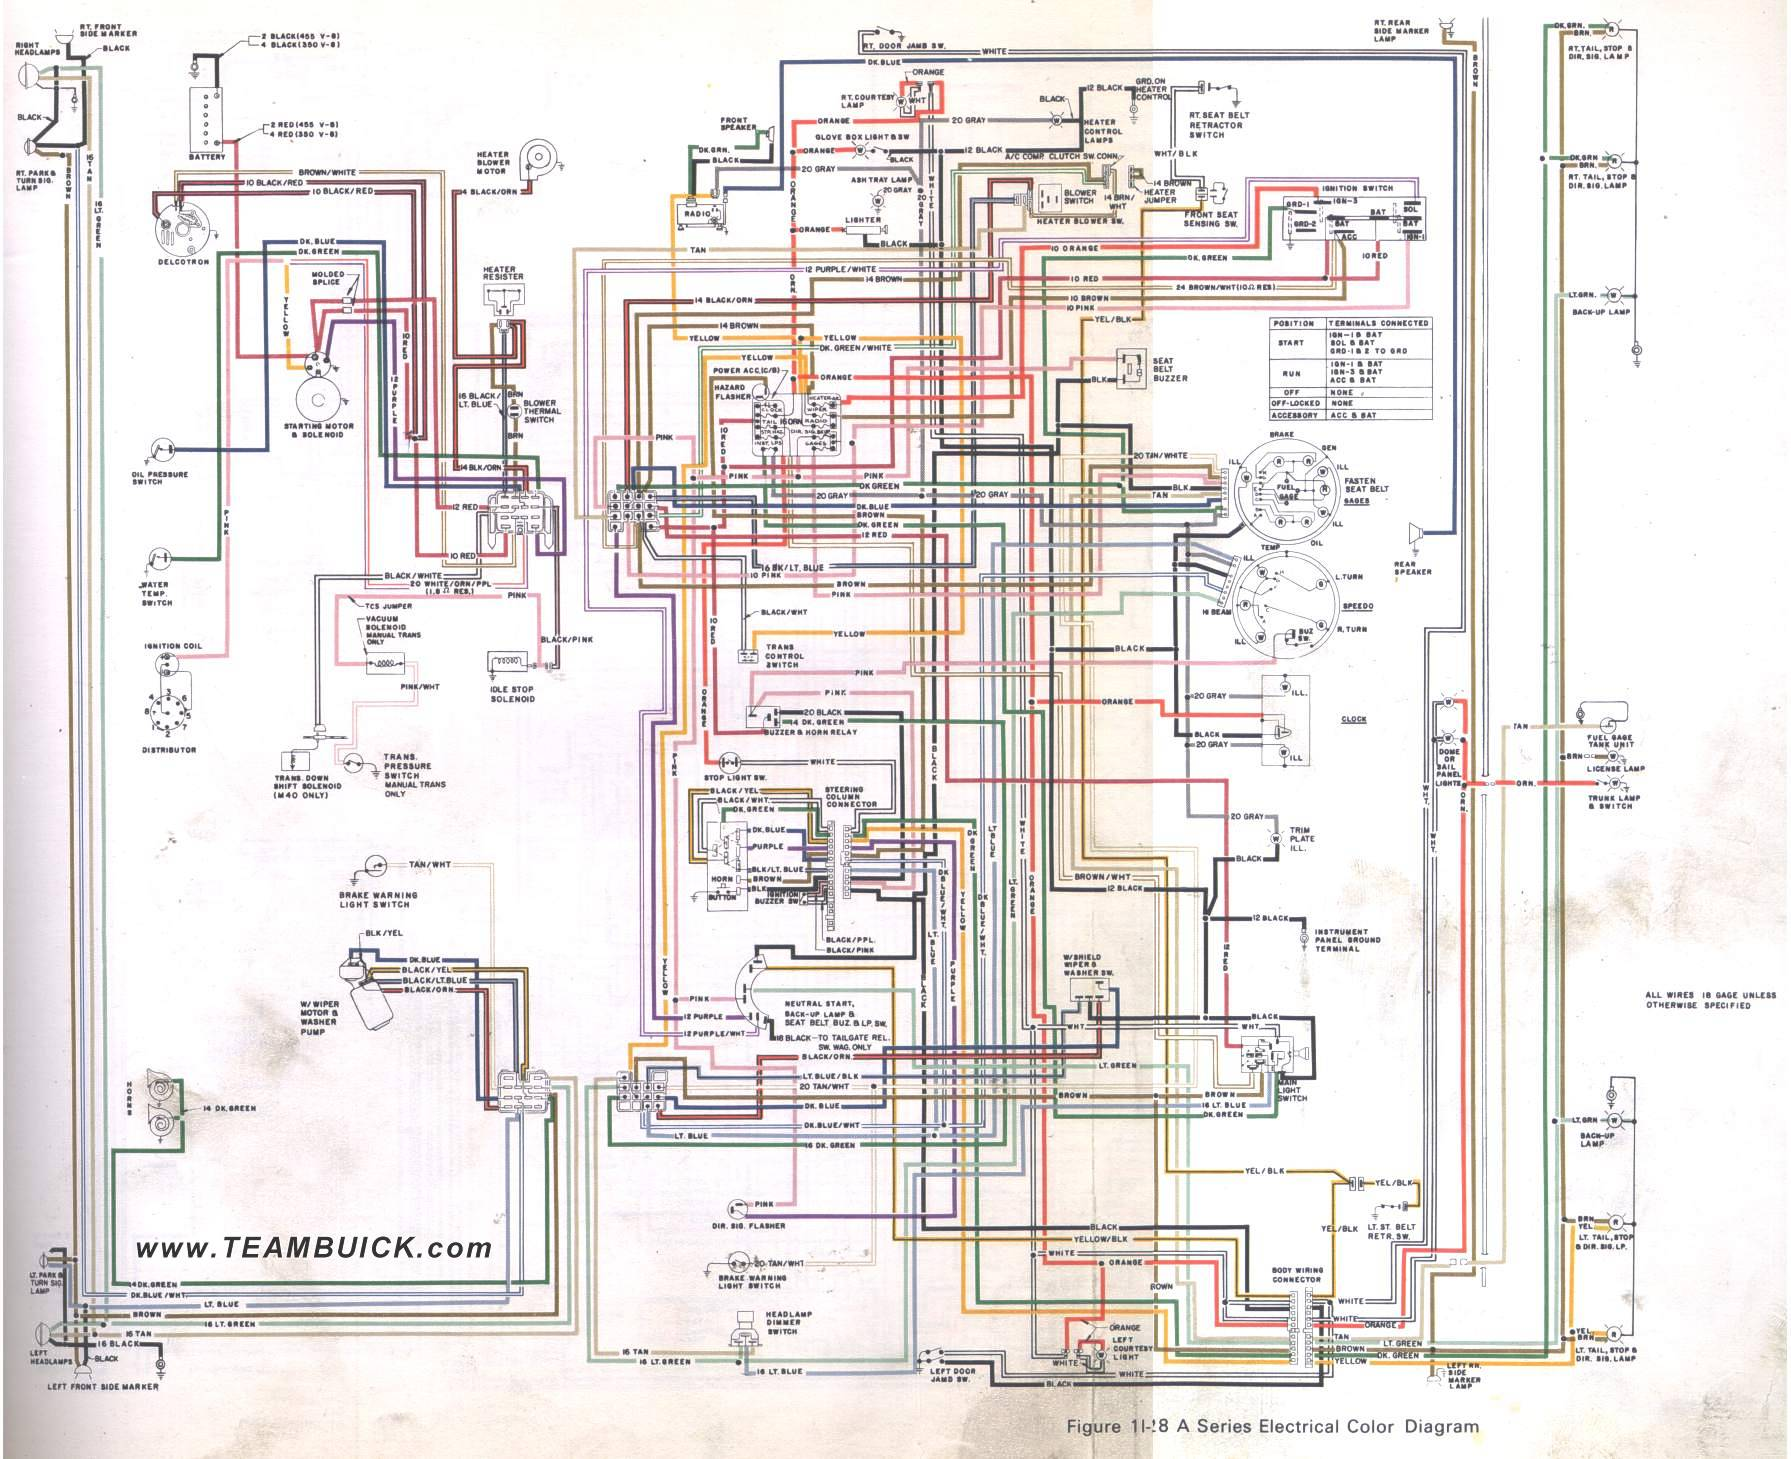 hight resolution of 1973 buick a series wiring diagram